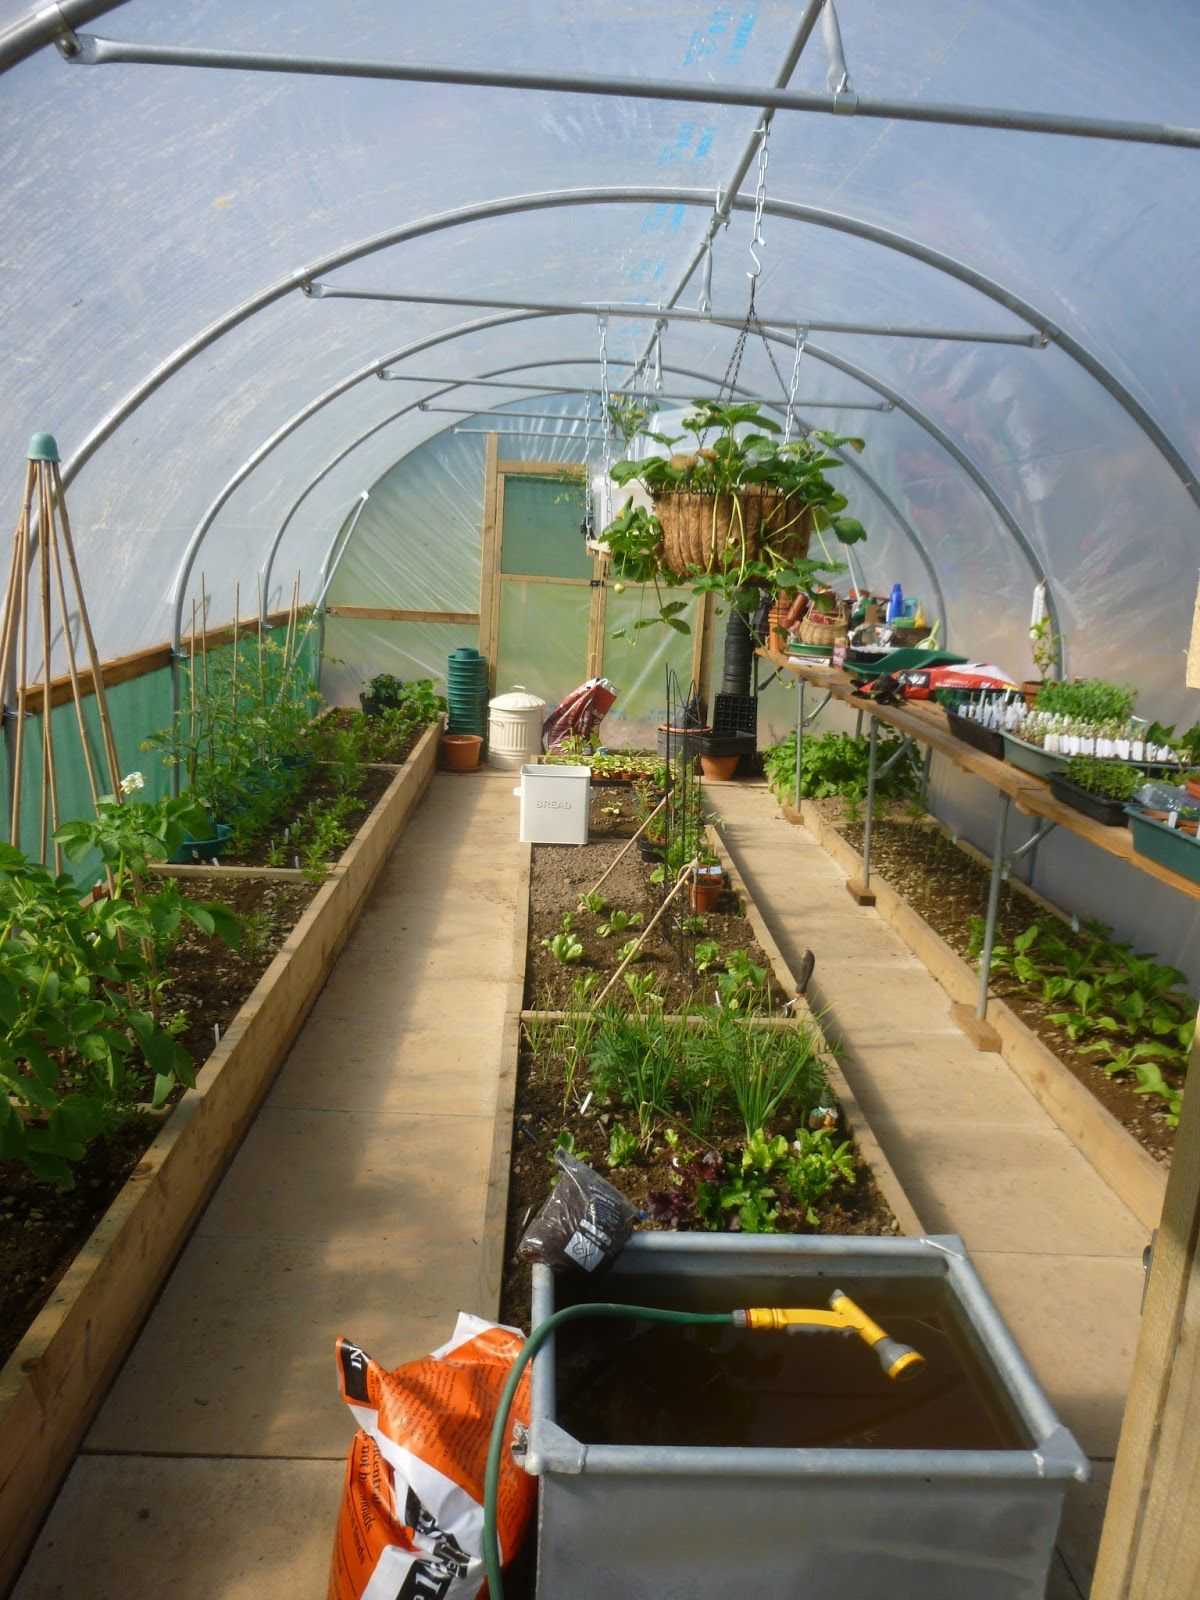 Polytunnel Bed Layout Google Search Greenhouse Farming Raised Garden Greenhouse